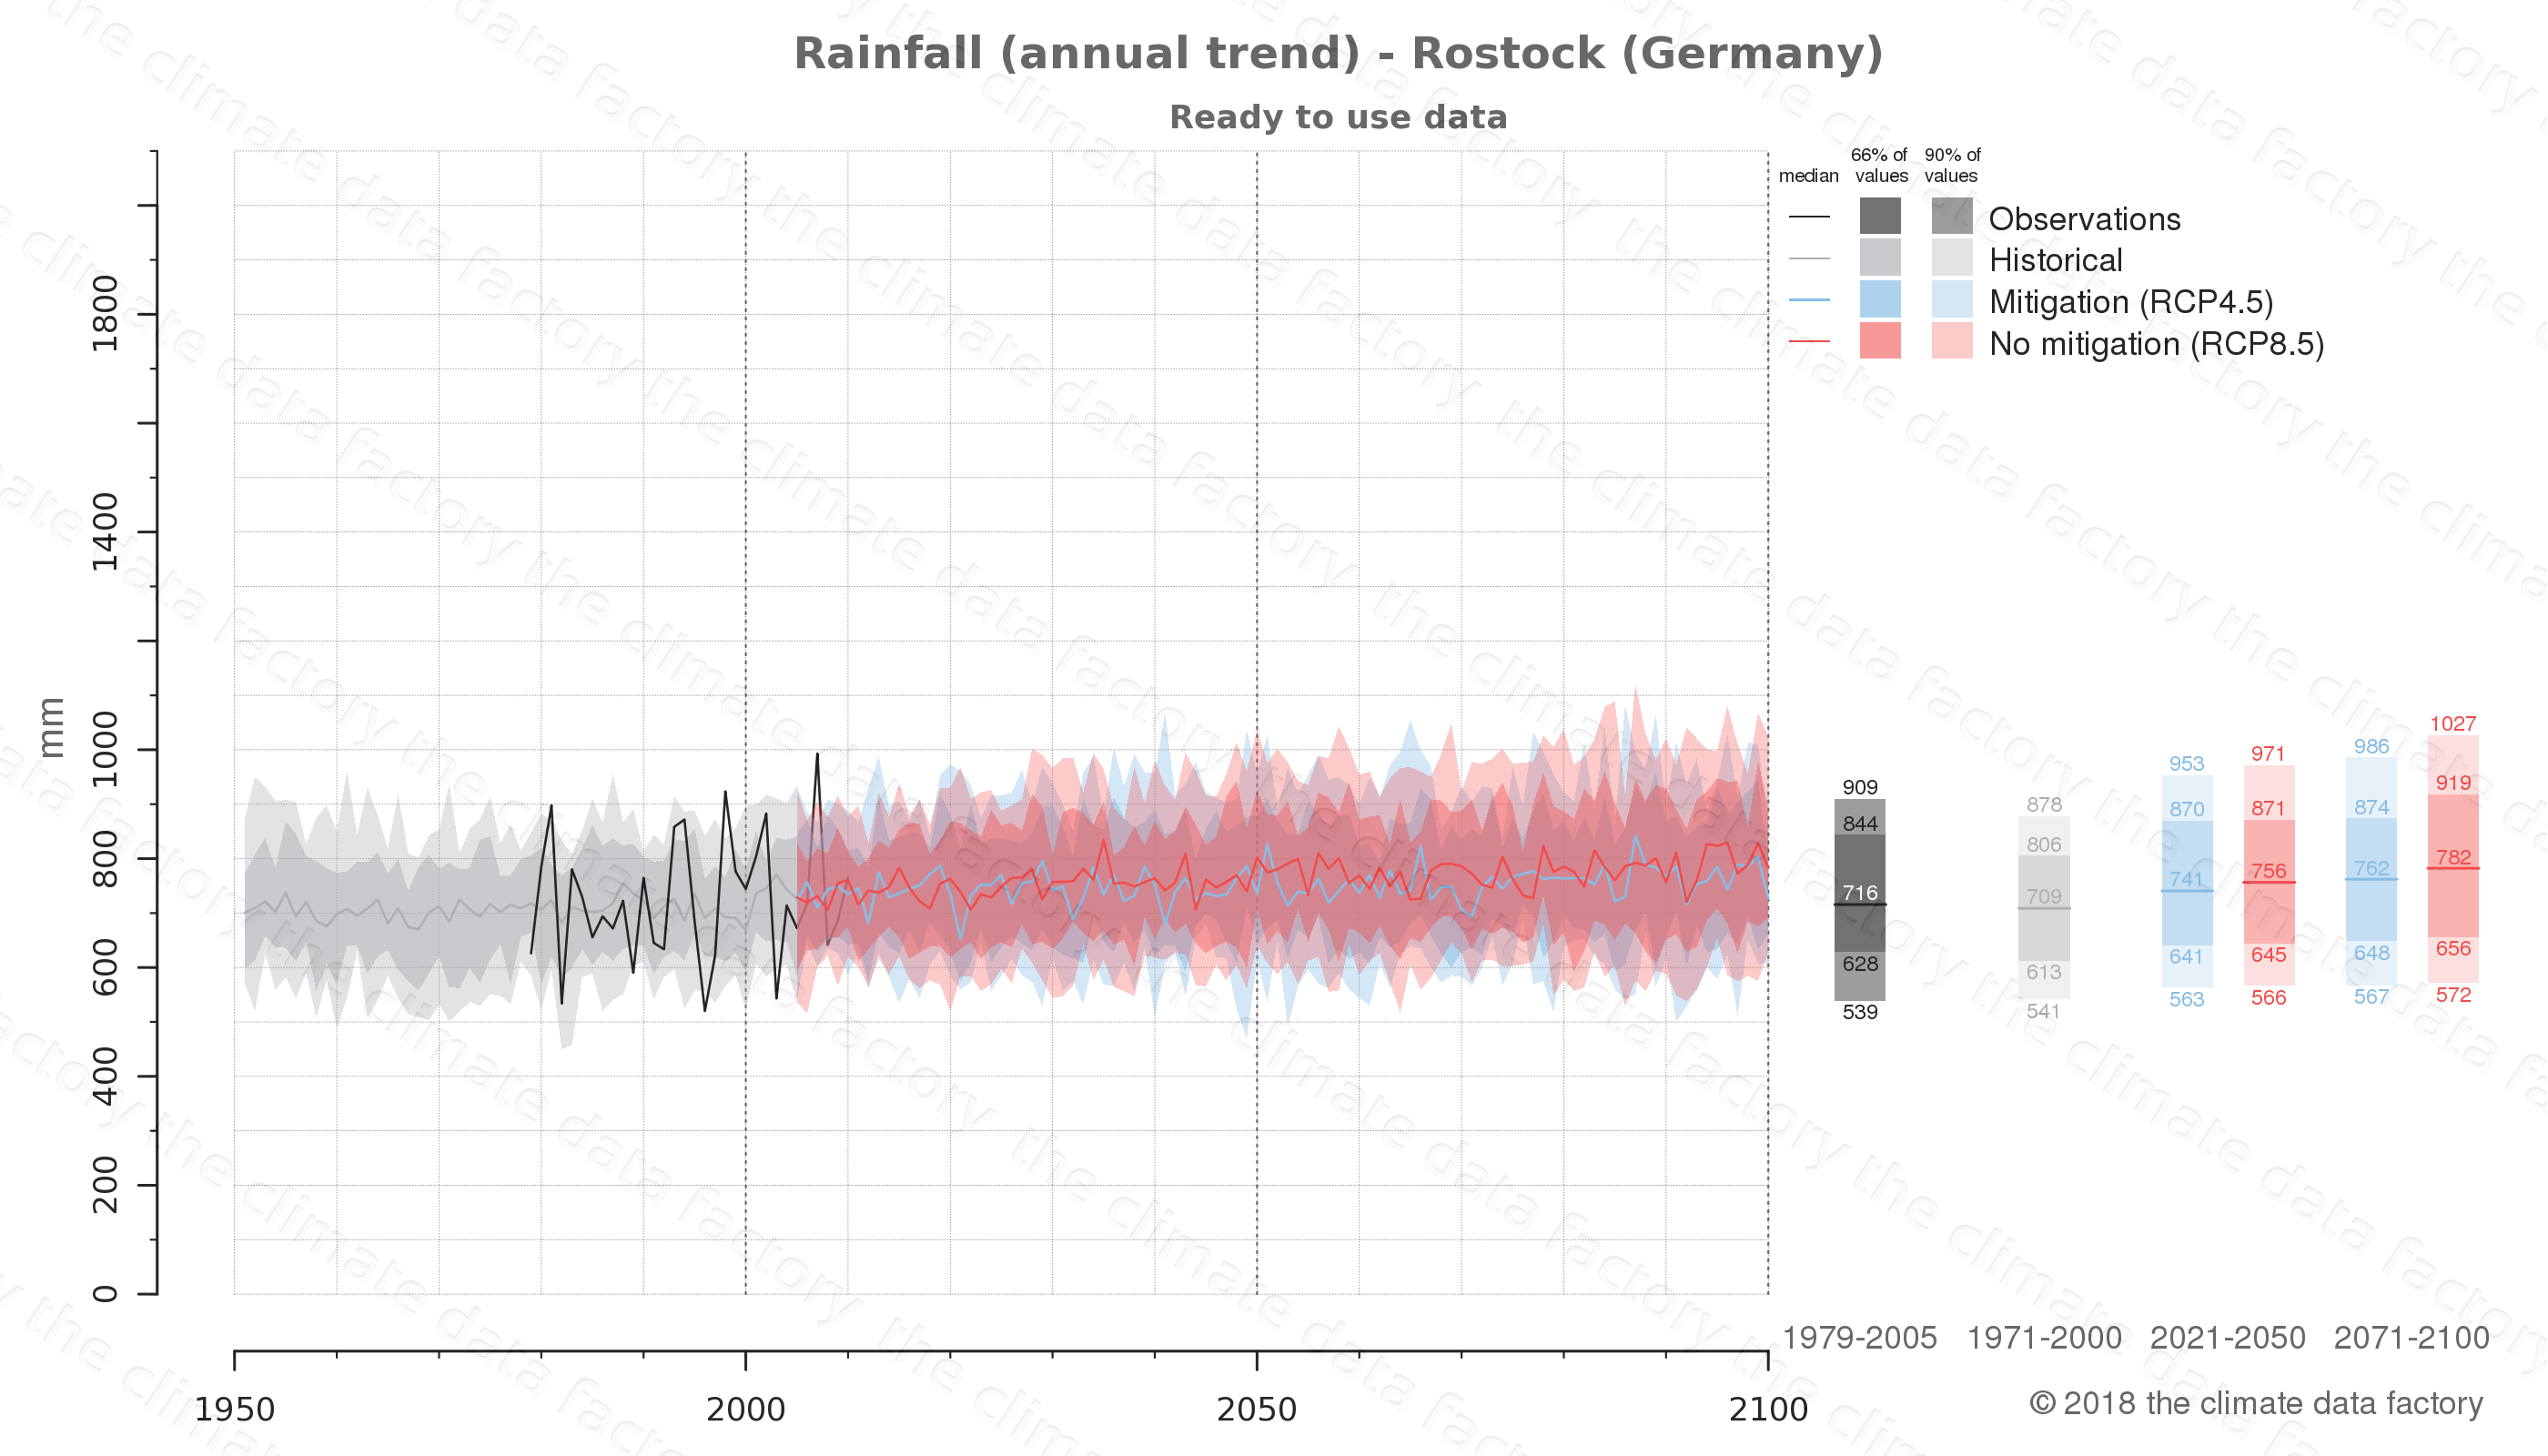 climate change data policy adaptation climate graph city data rainfall rostock germany